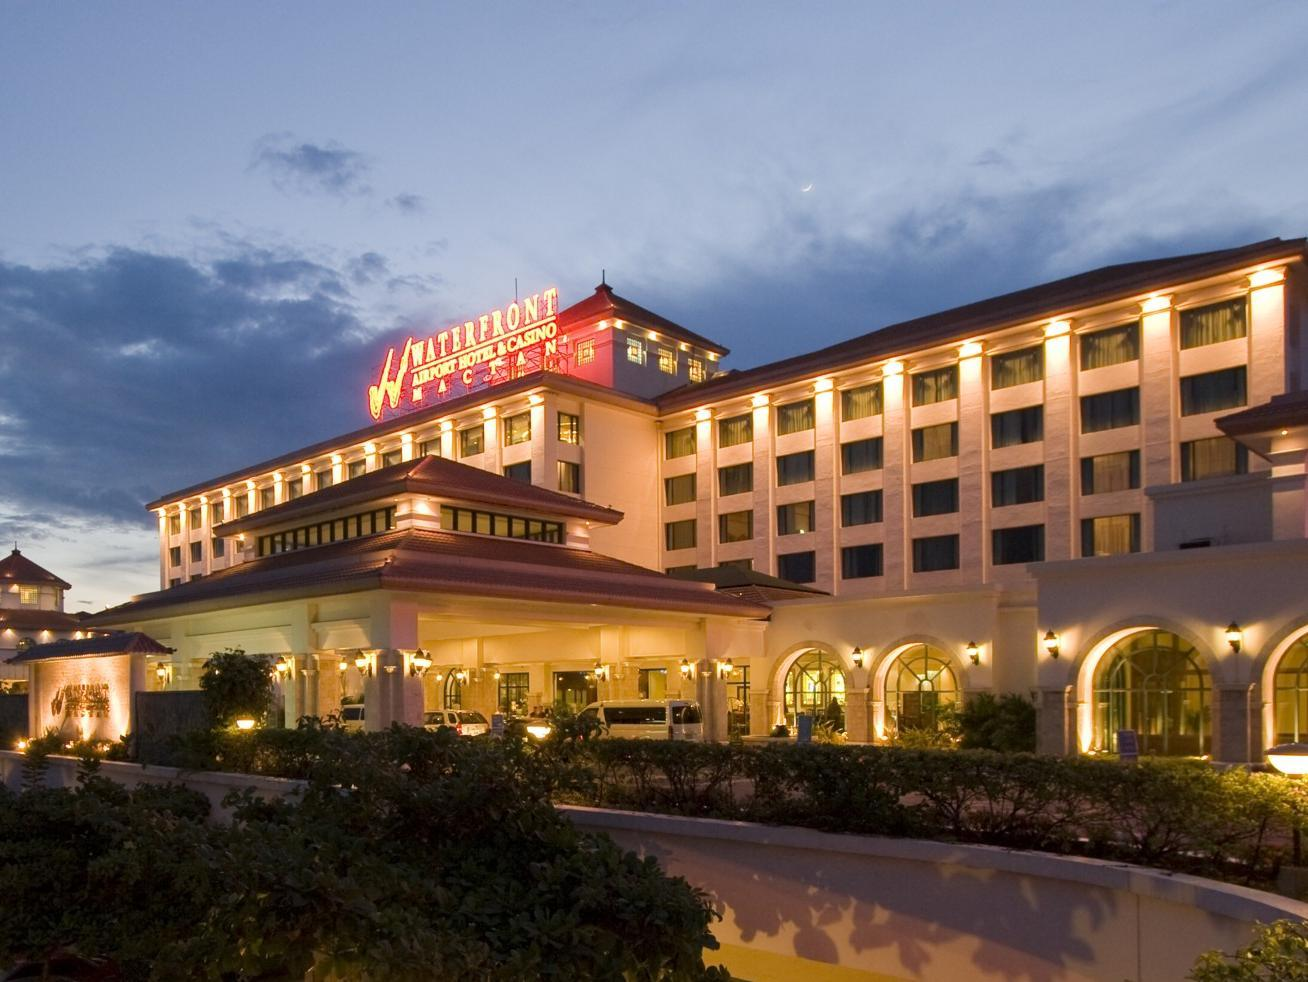 Waterfront Airport Hotel and Casino Cebu-stad - Hotel exterieur